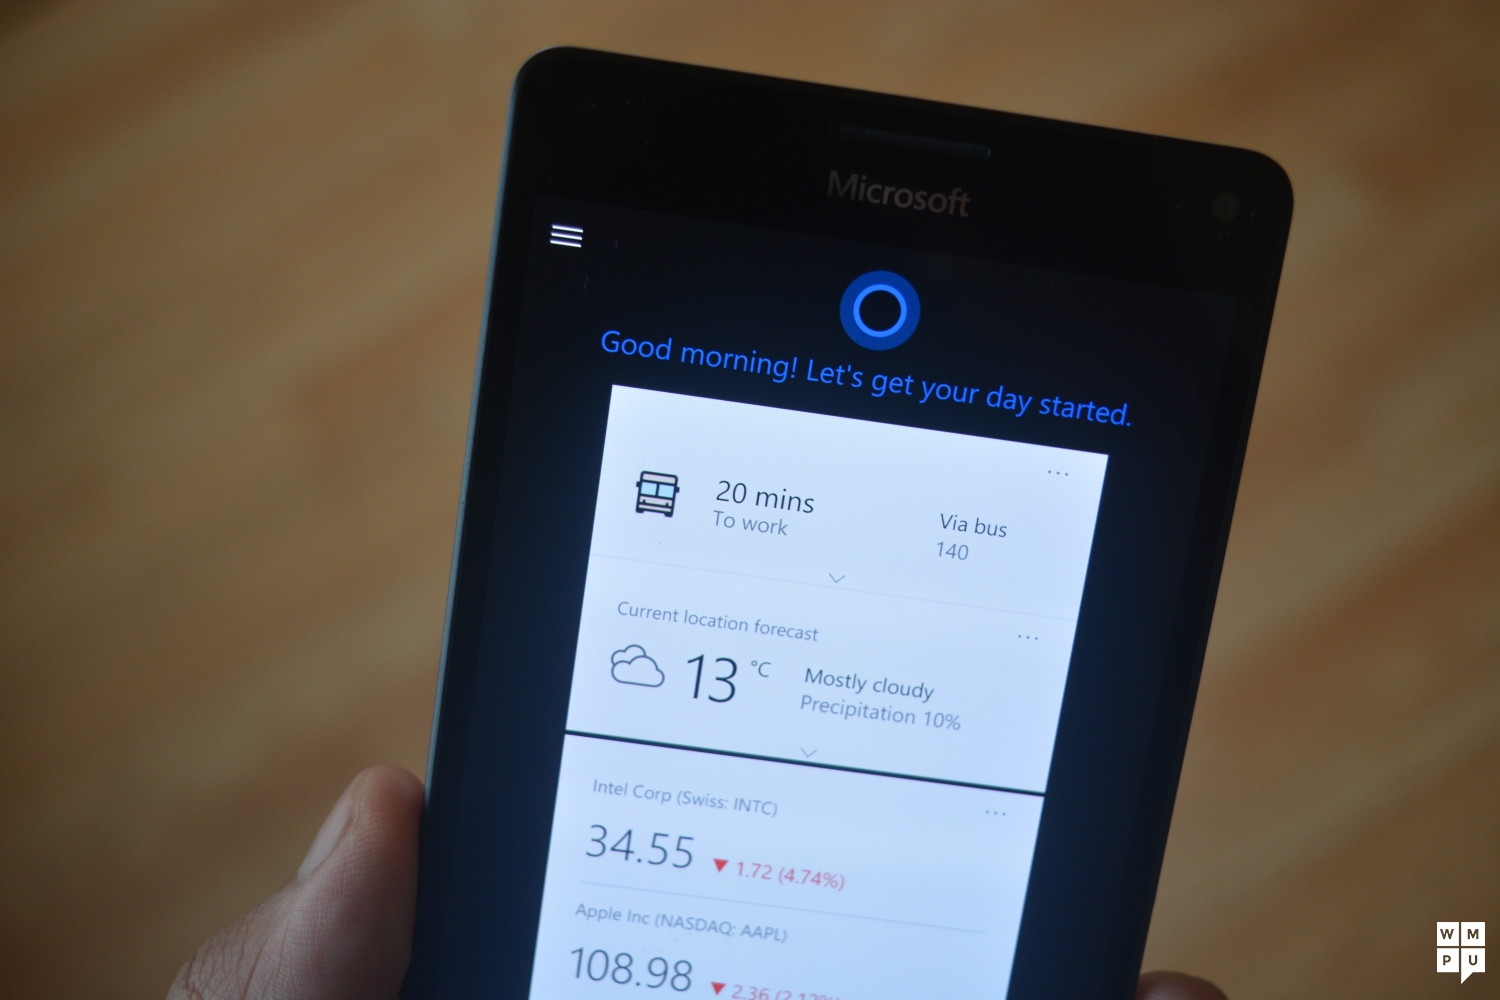 Cortana Call Me Something Different - Microsoft has released a new update for microsoft phone that adds a new feature for getting a reminder when you reject a call via cortana